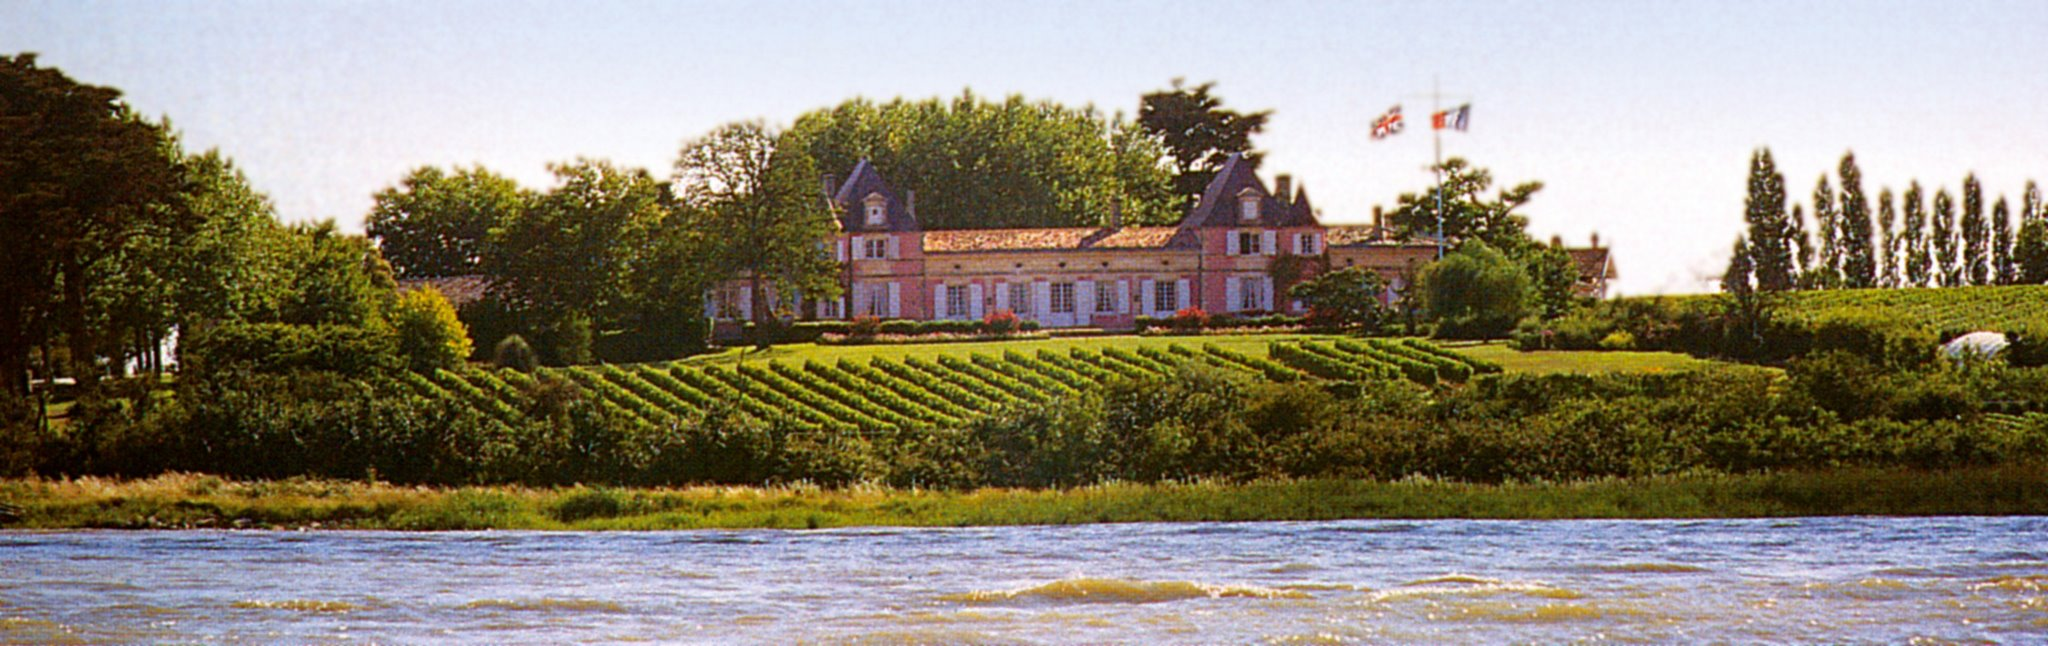 Chateau loudenne